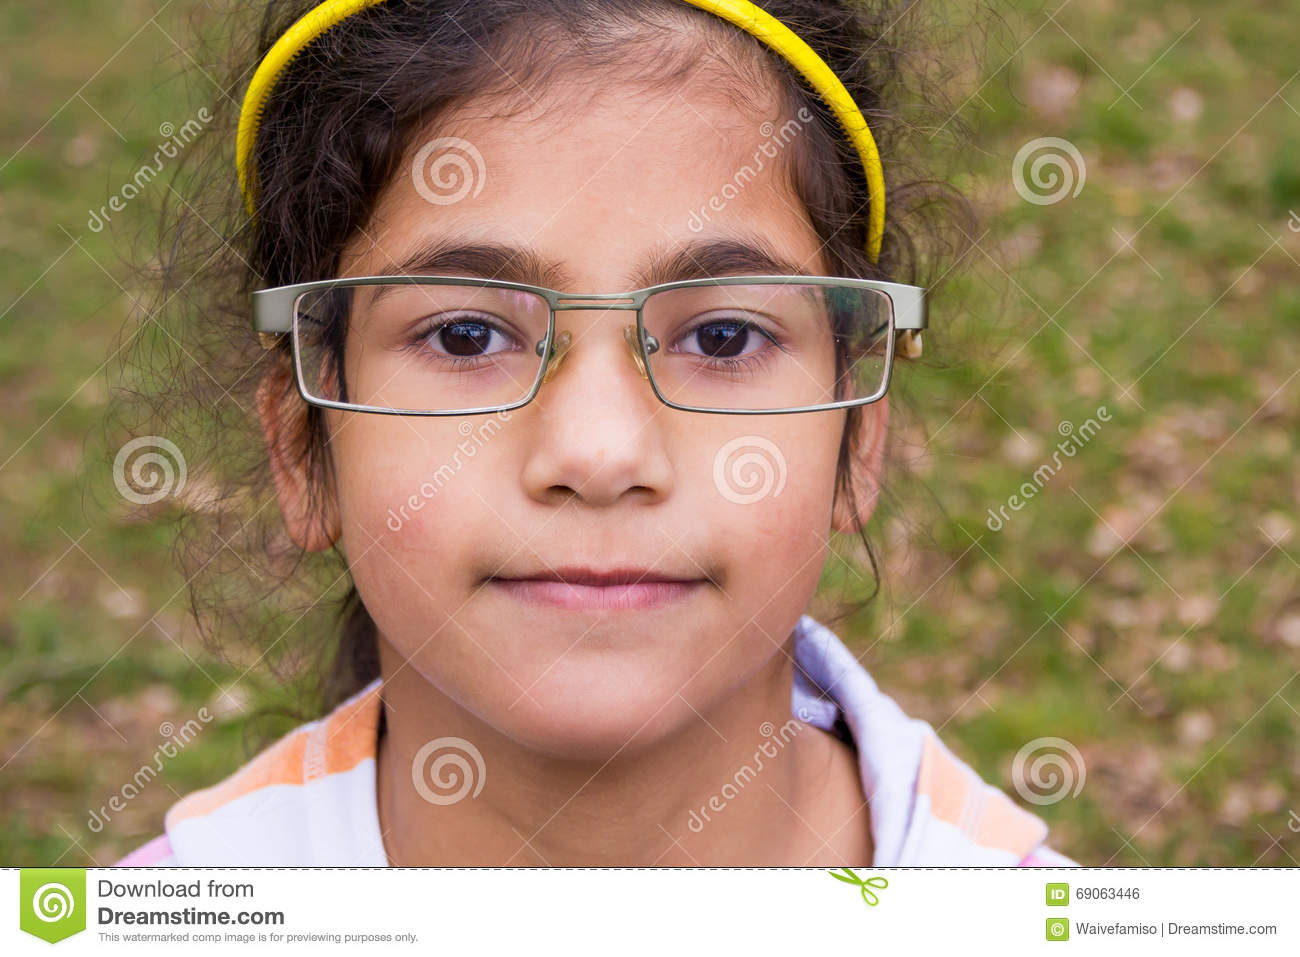 Funny Child Girl Wear Too Big Glasses Stock Photo - Image of smile ...